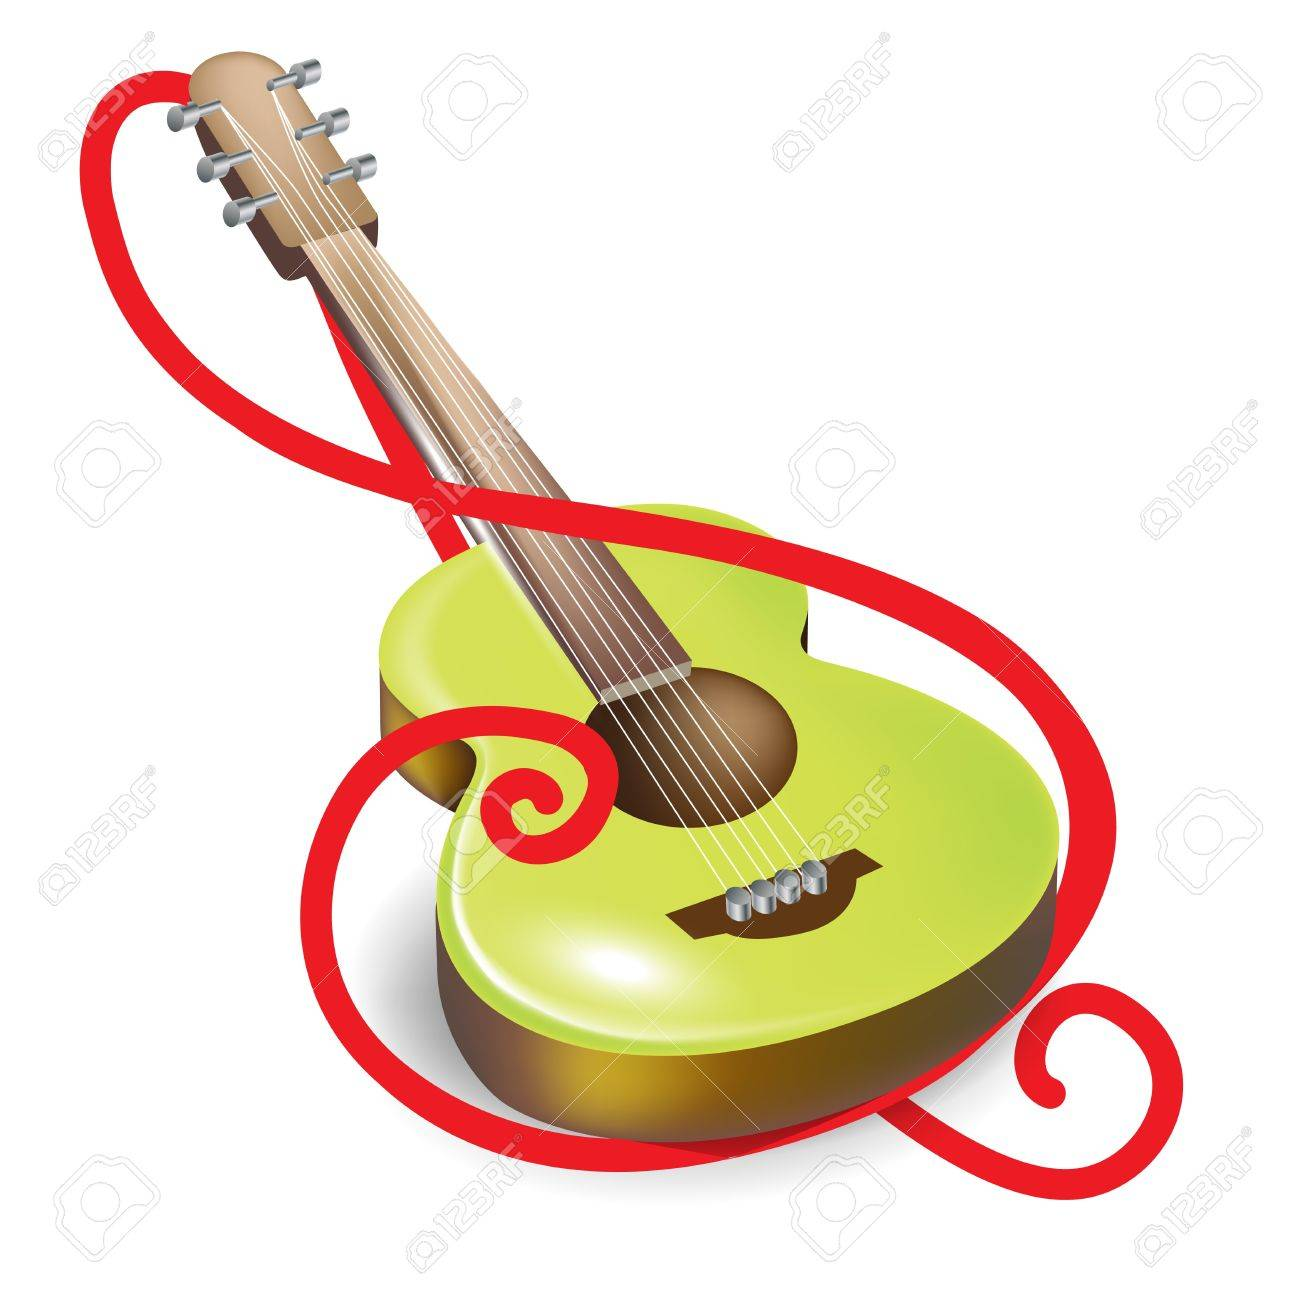 acoustic guitar and clef symbol isolated Stock Vector - 14554948